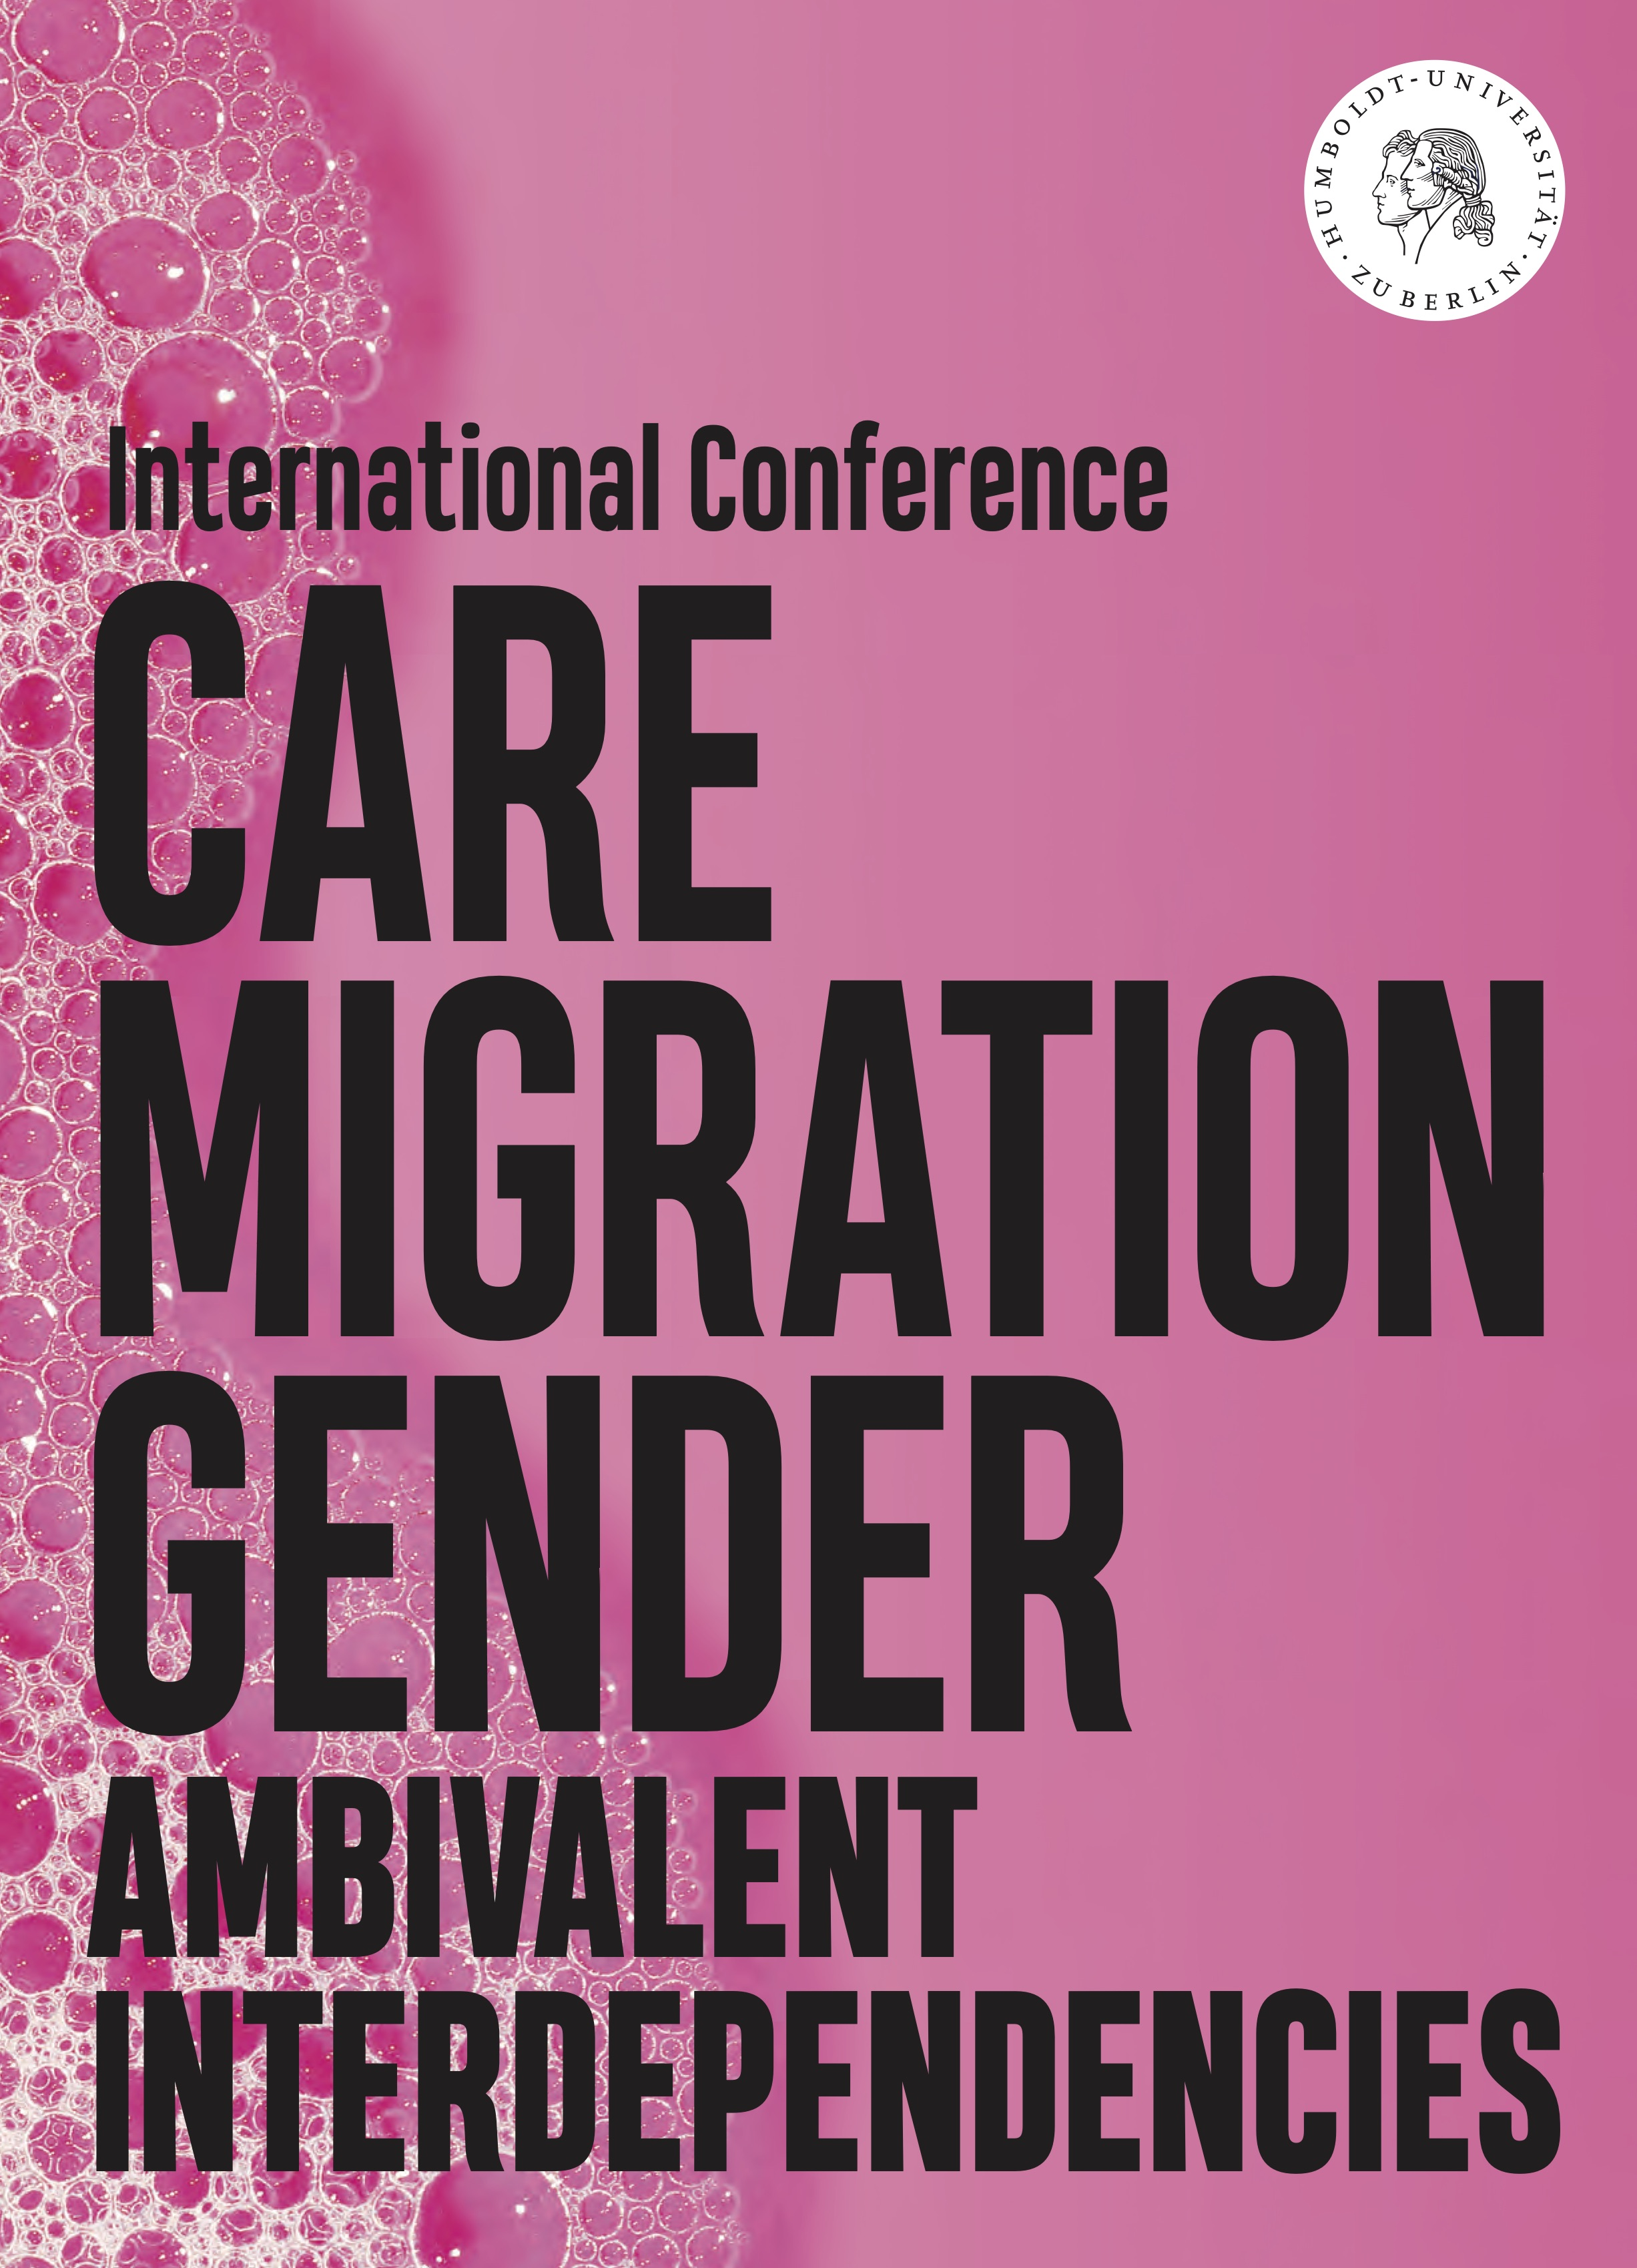 Cover art: pink background with soap bubbles; Text: International Conference Care Migration Gender Ambivalent Interdependencies; Logo HU Berlin